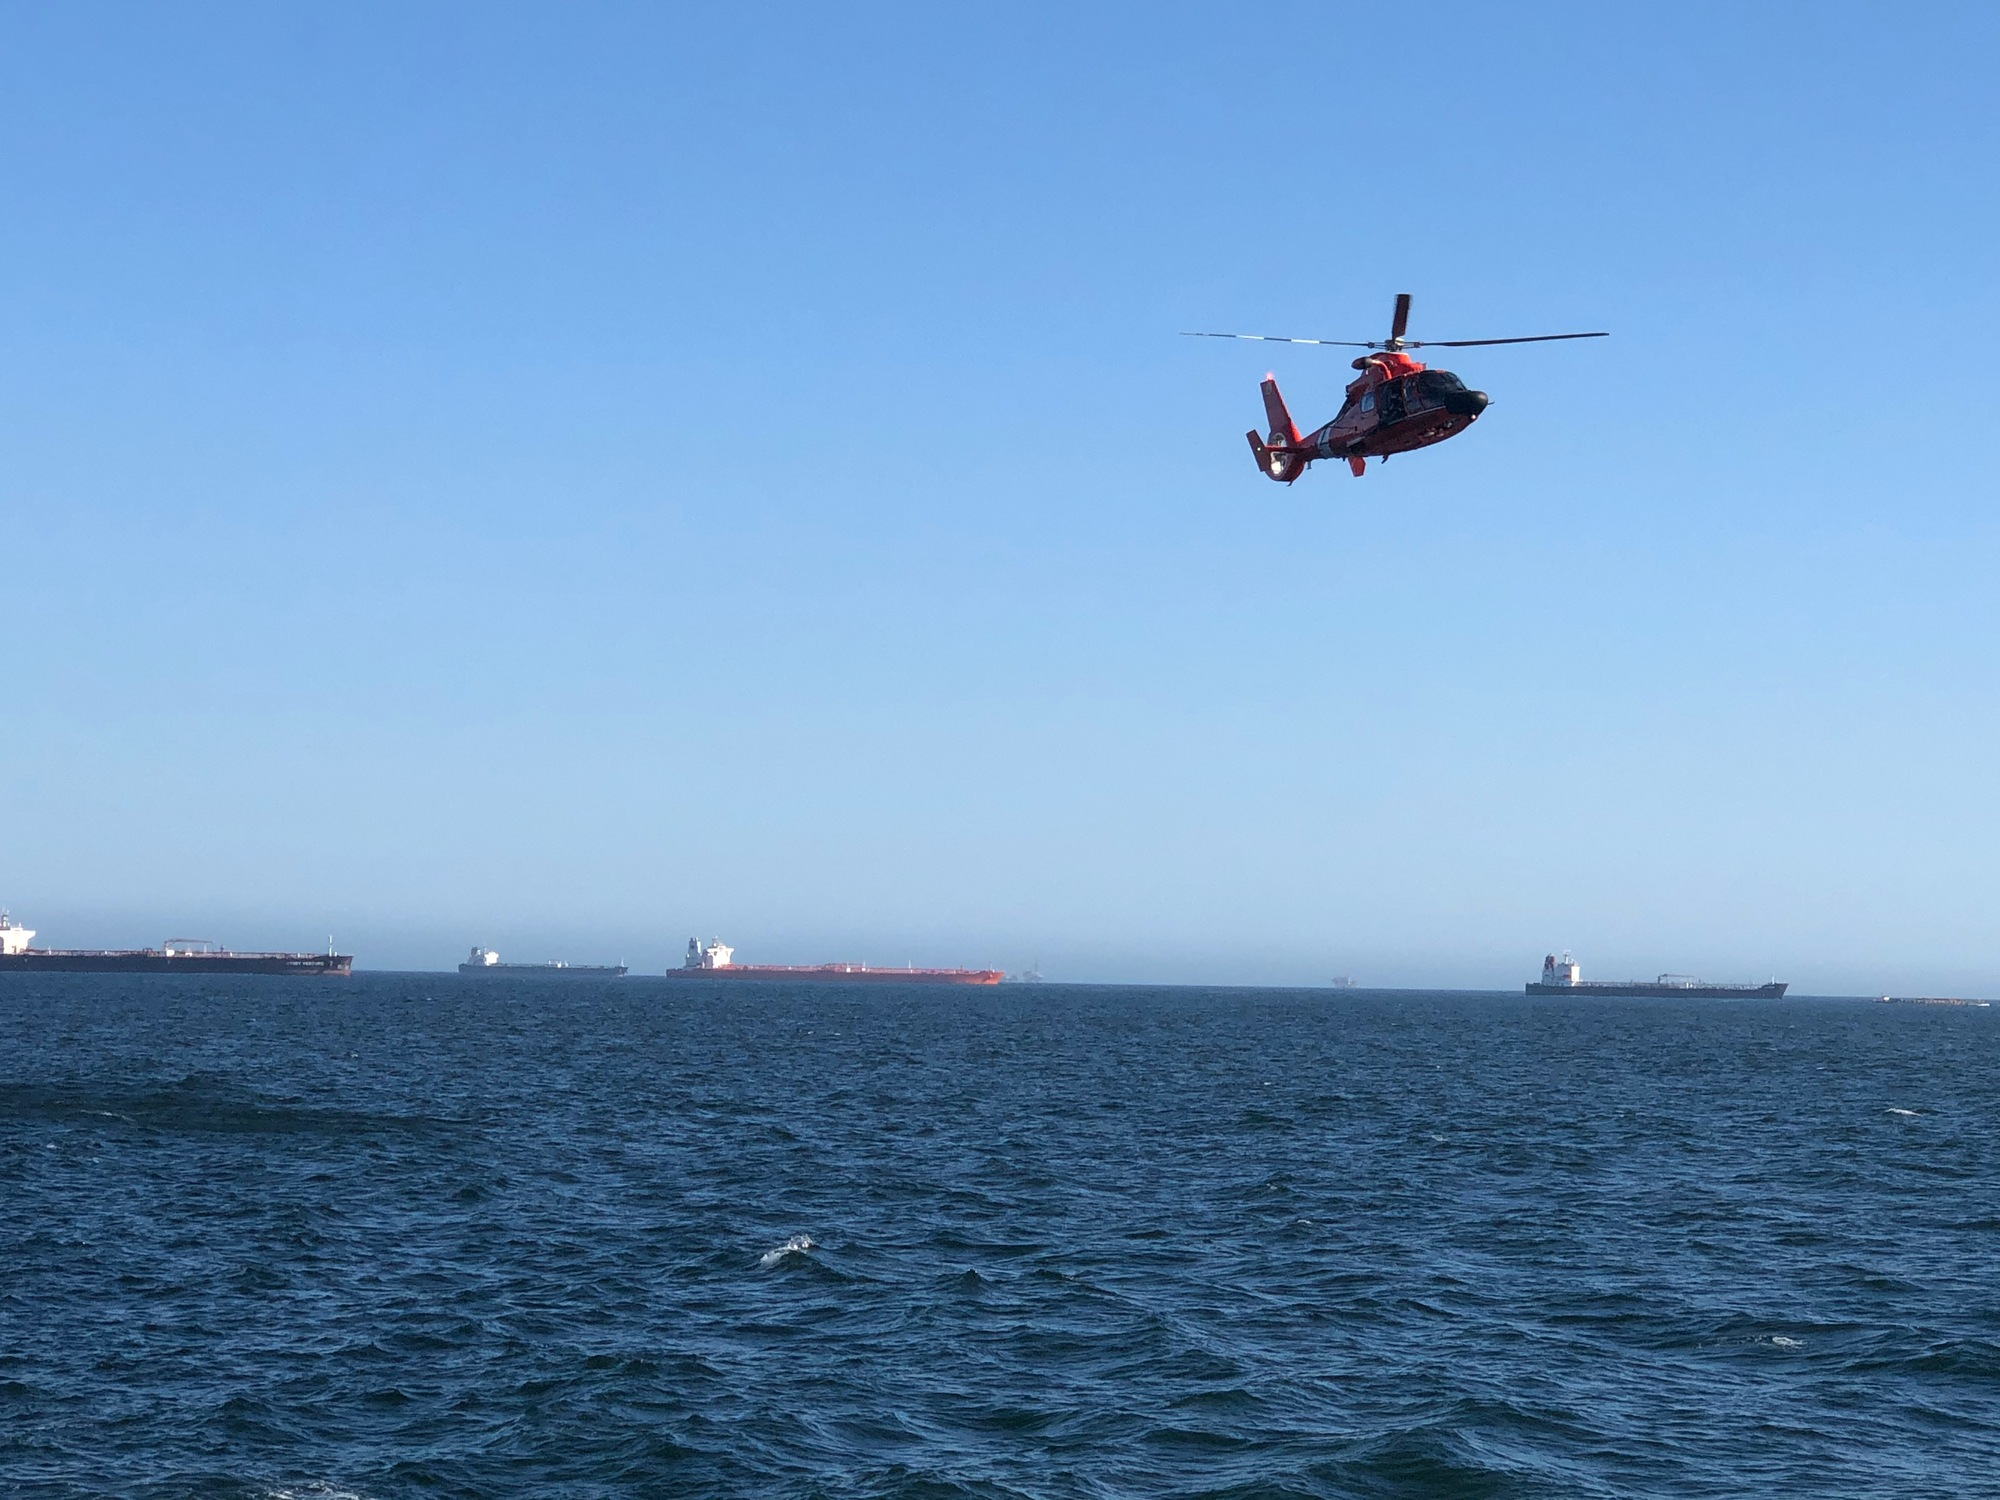 MH-65 Dolphin helicopter flying off coast of SoCal